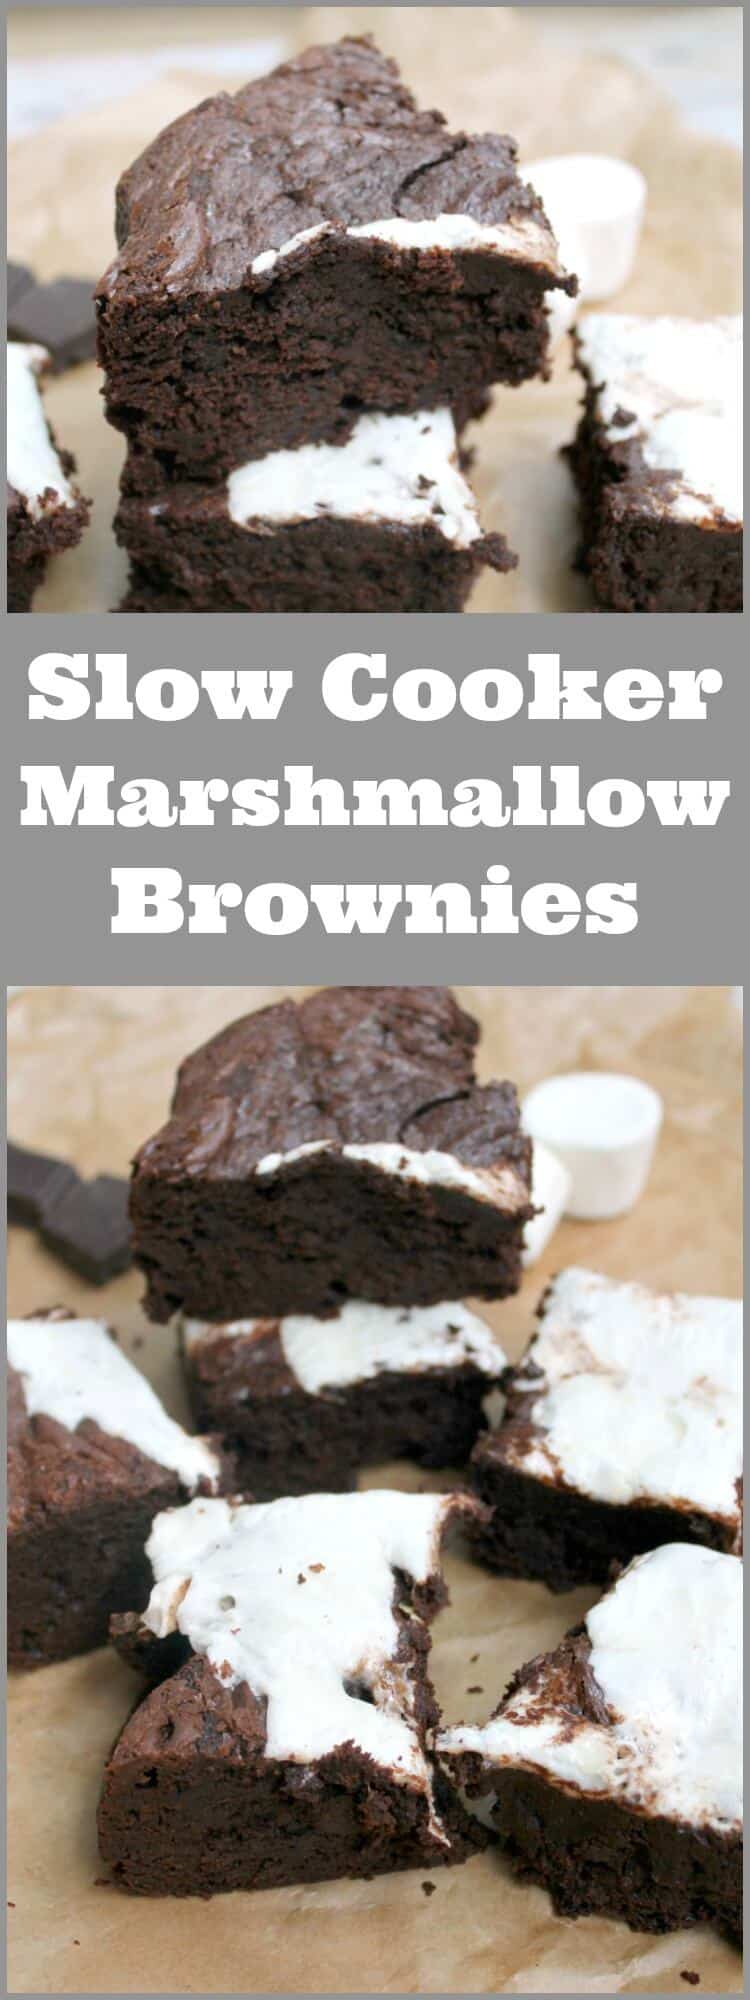 Slow Cooker Marshmallow Brownies Bakingqueen74